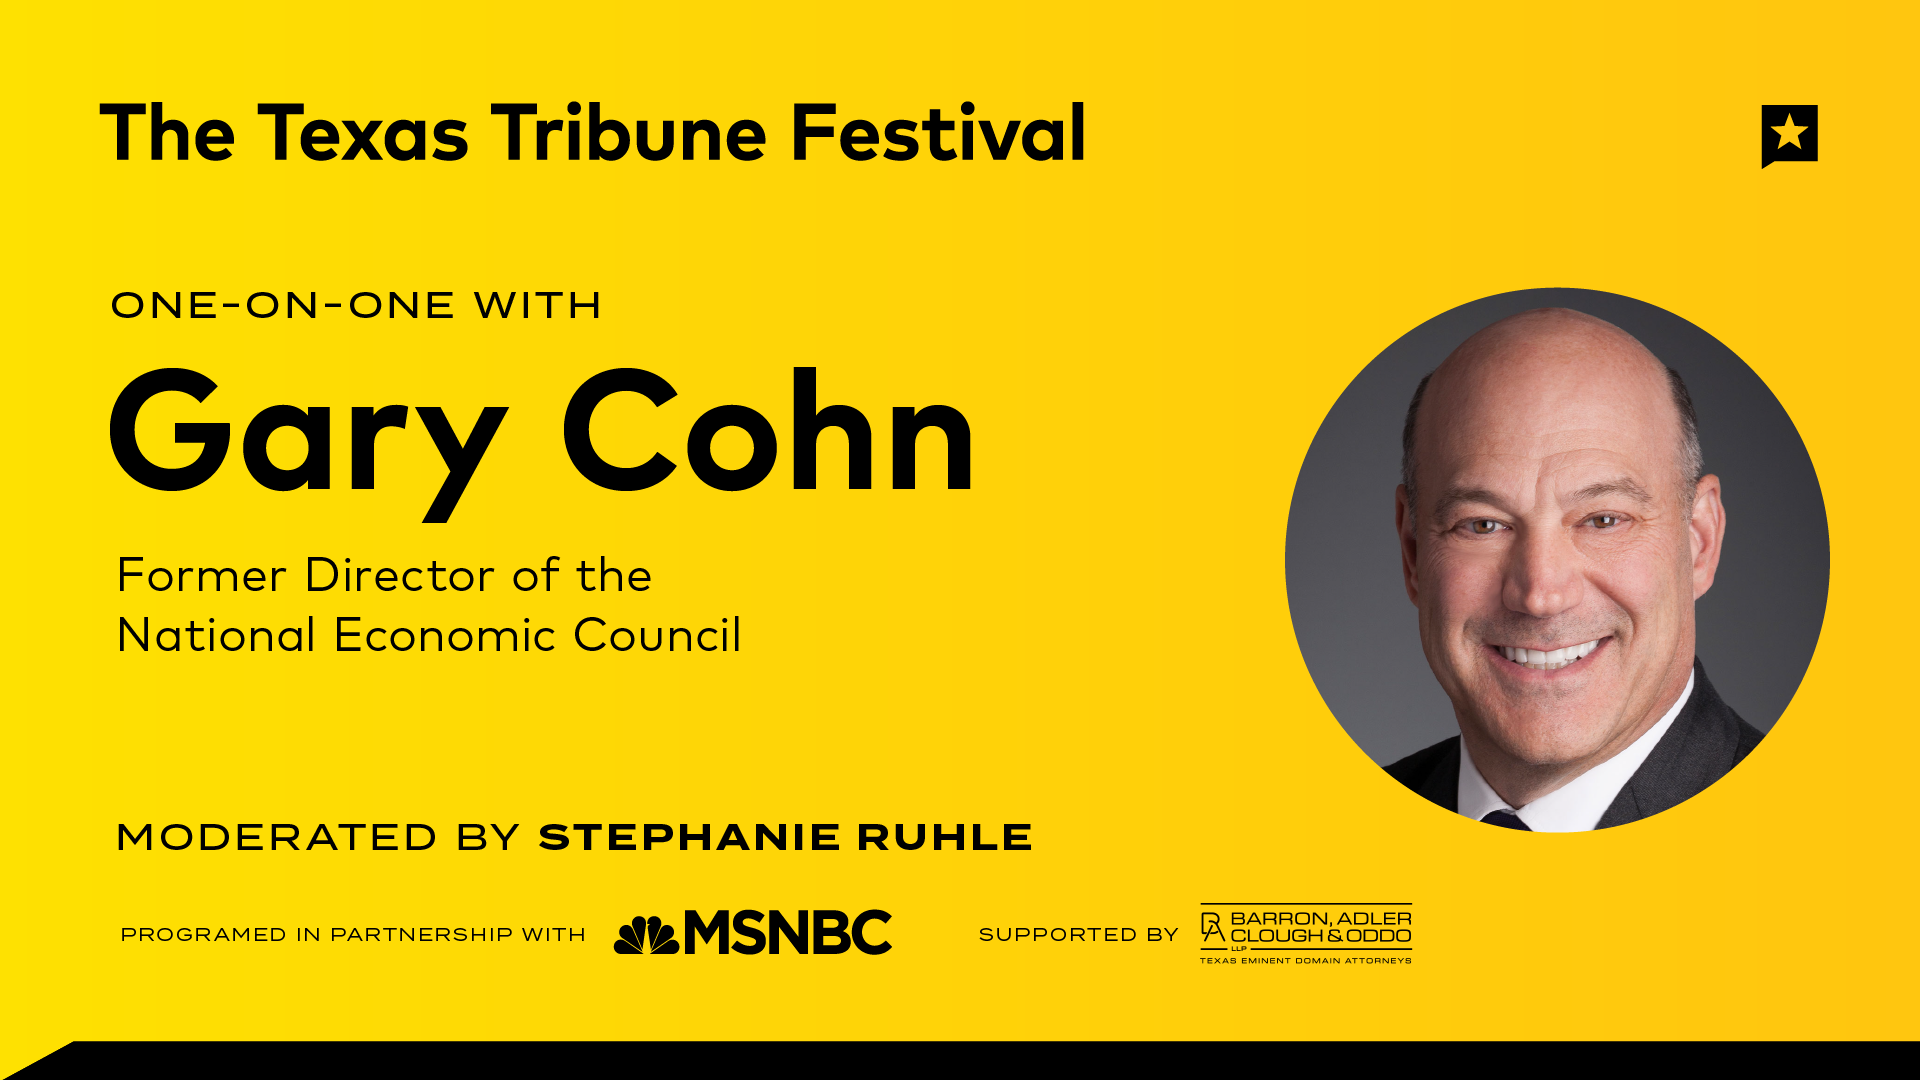 One-on-One with Gary Cohn